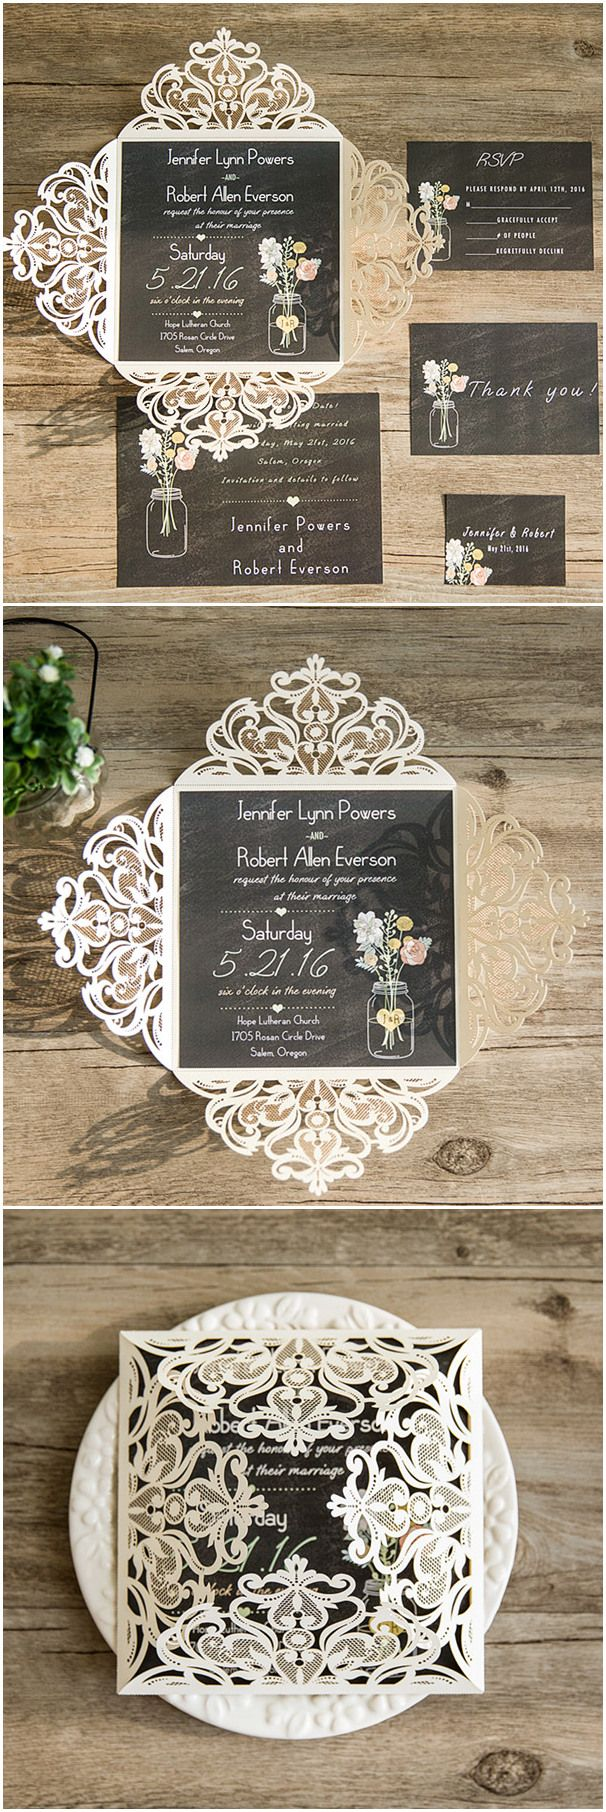 country rustic mason jars wedding invitations with laser cut pocket via elegantwinvites